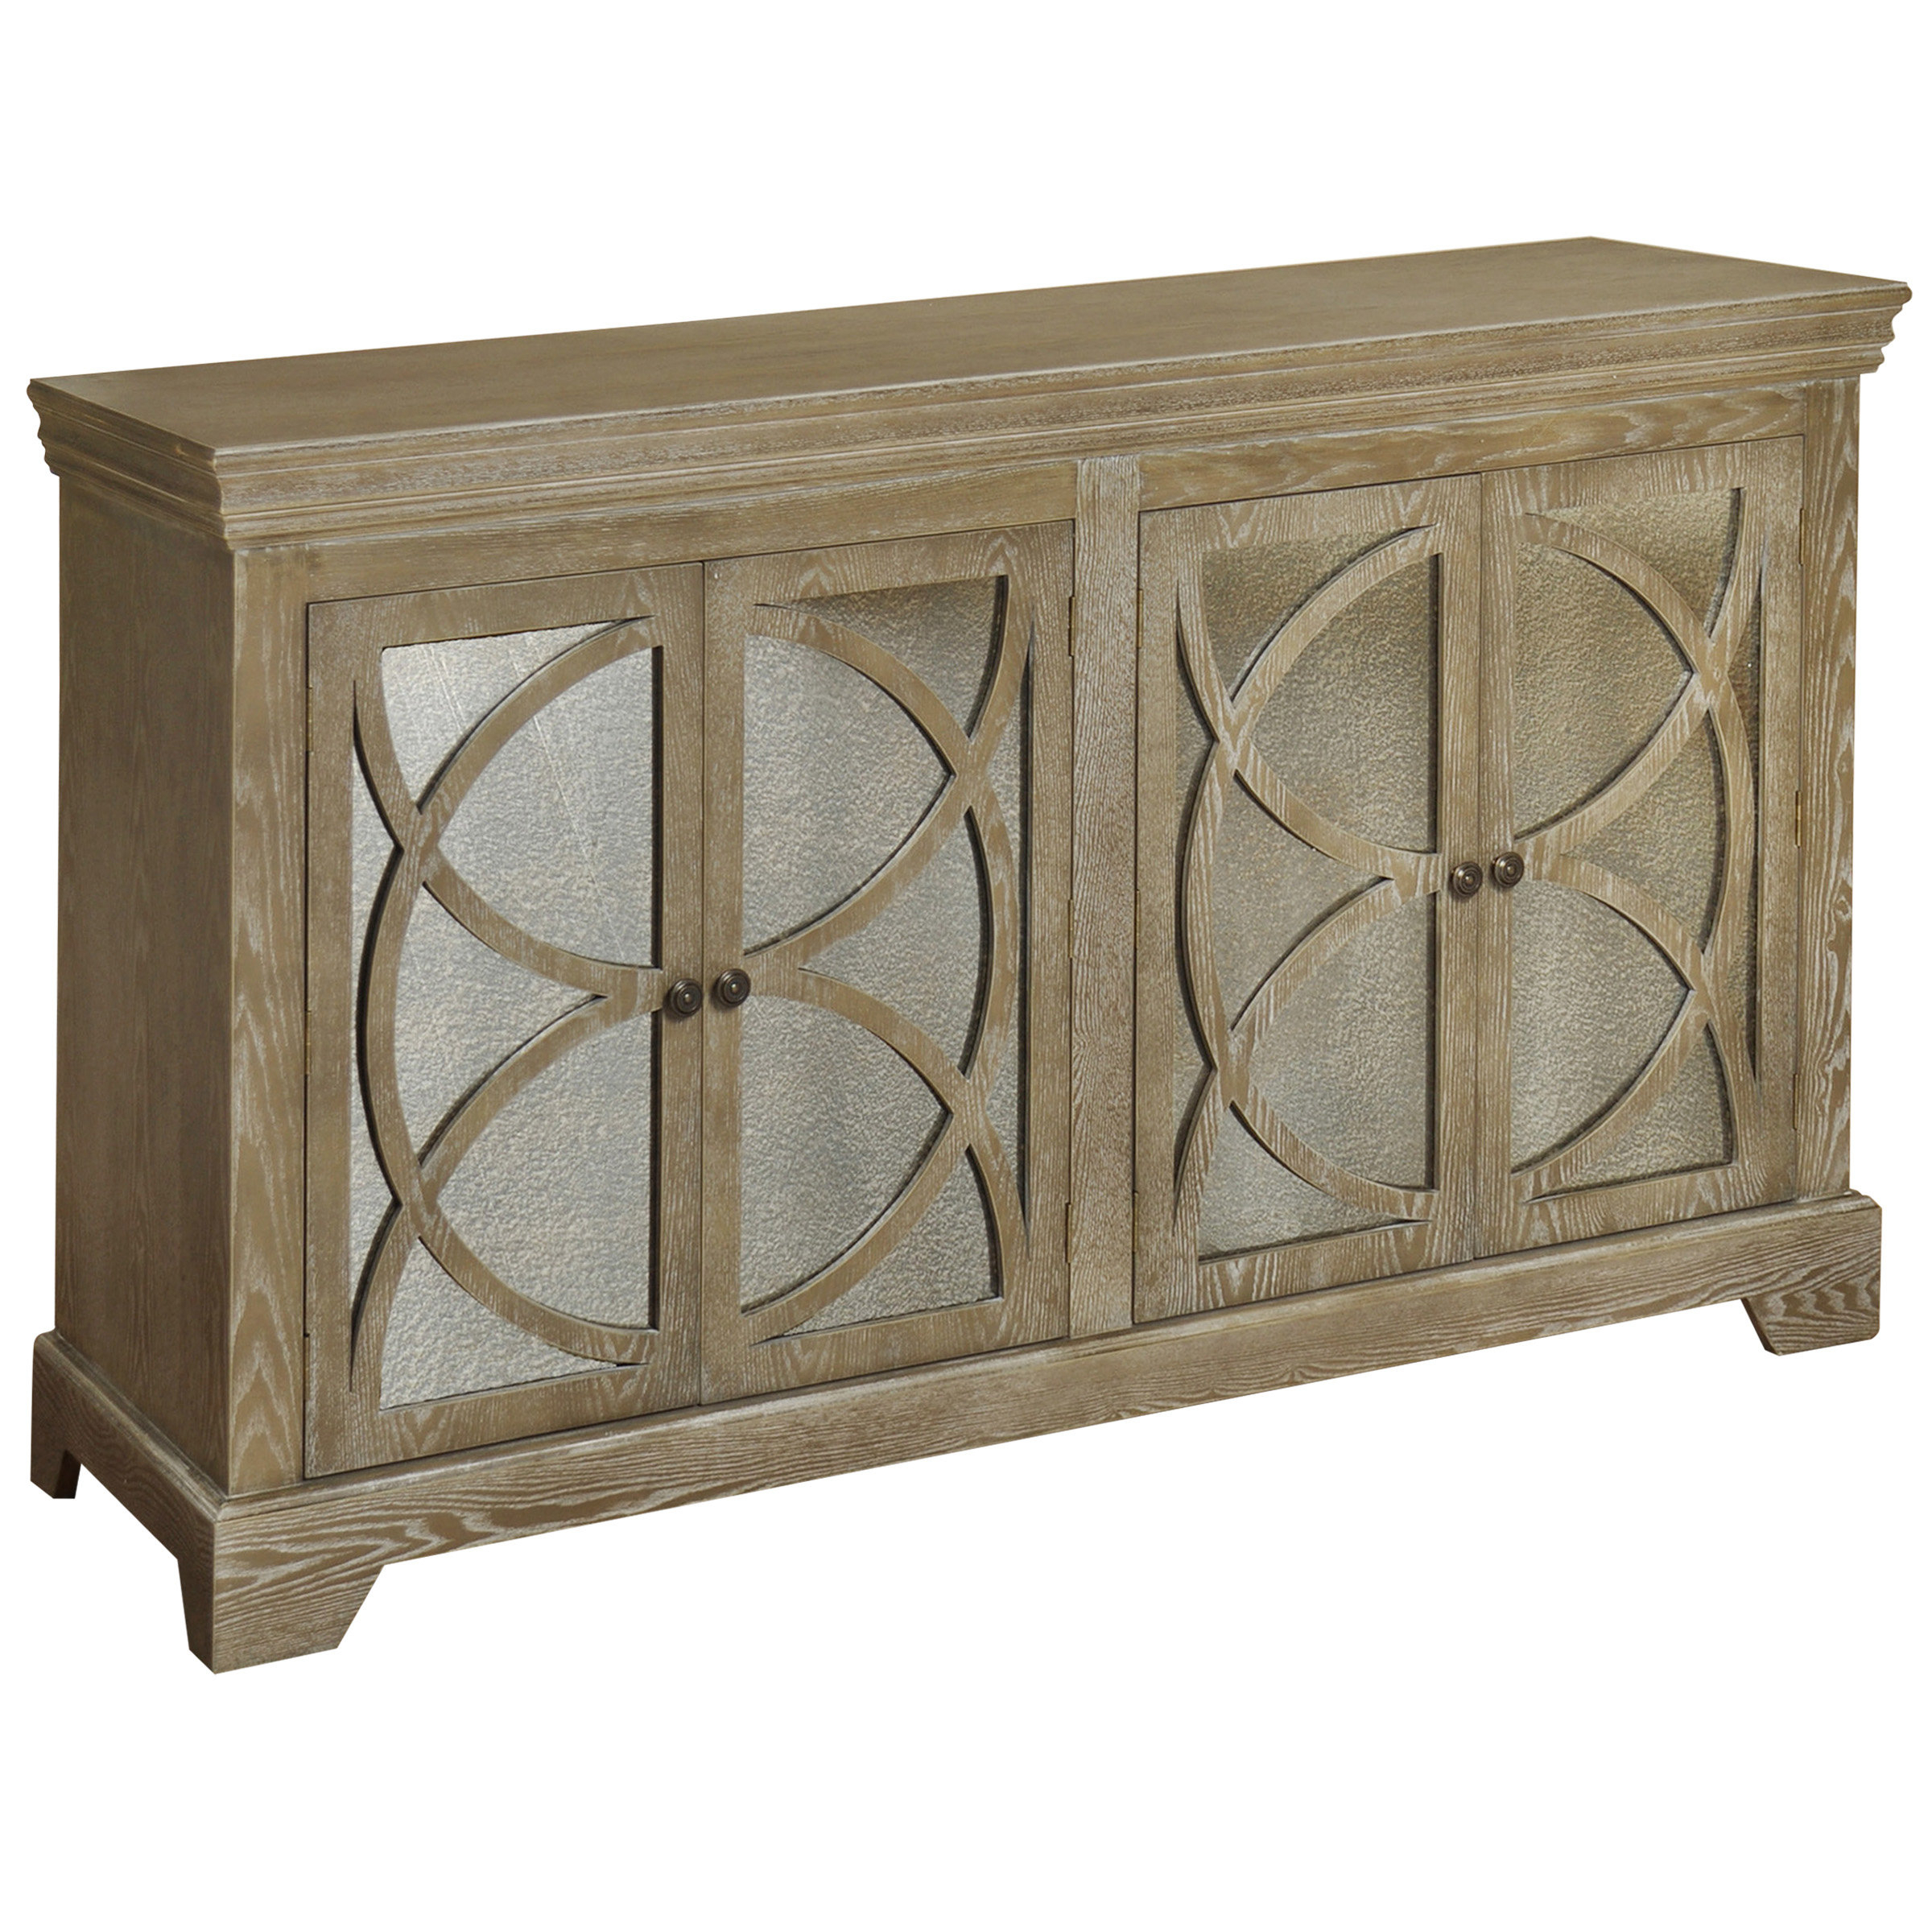 World Menagerie Poirier 4 Door Credenza | Wayfair With Aberdeen Westin Sideboards (View 9 of 20)